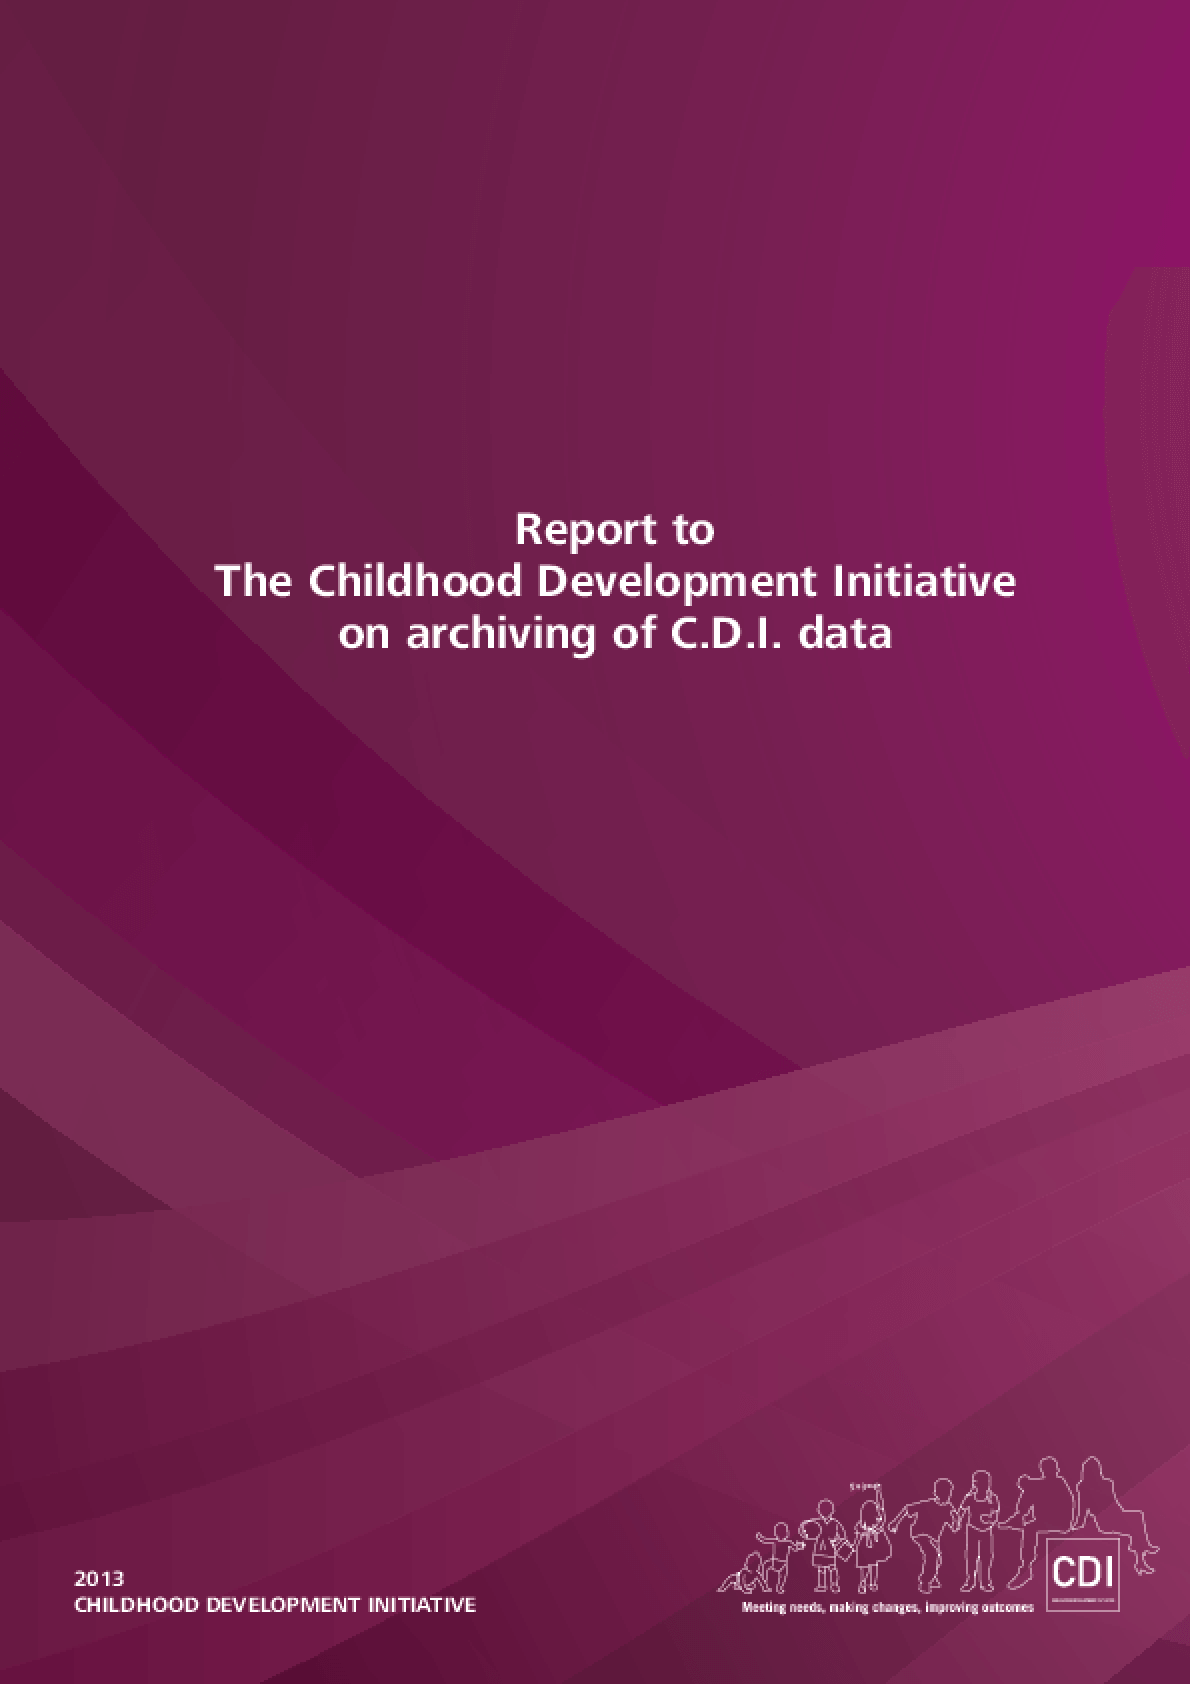 Report to the Childhood Development Initiative on Archiving of C.D.I. Data